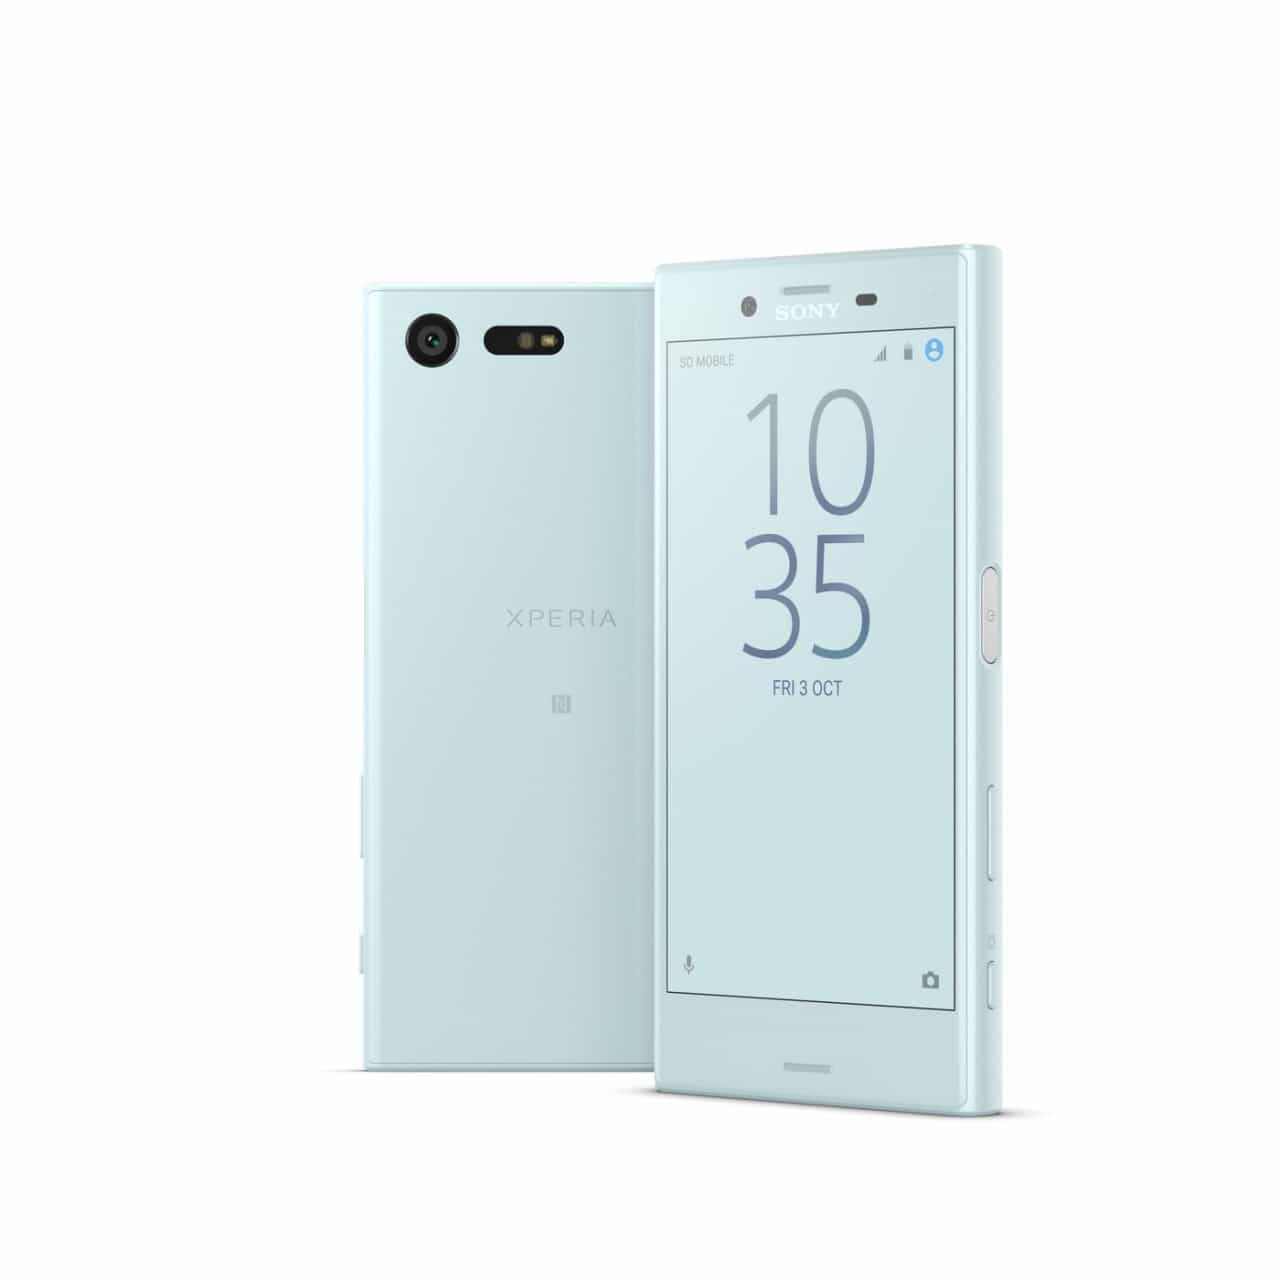 Sony-Xperia-X-Compact-1-1280x1280